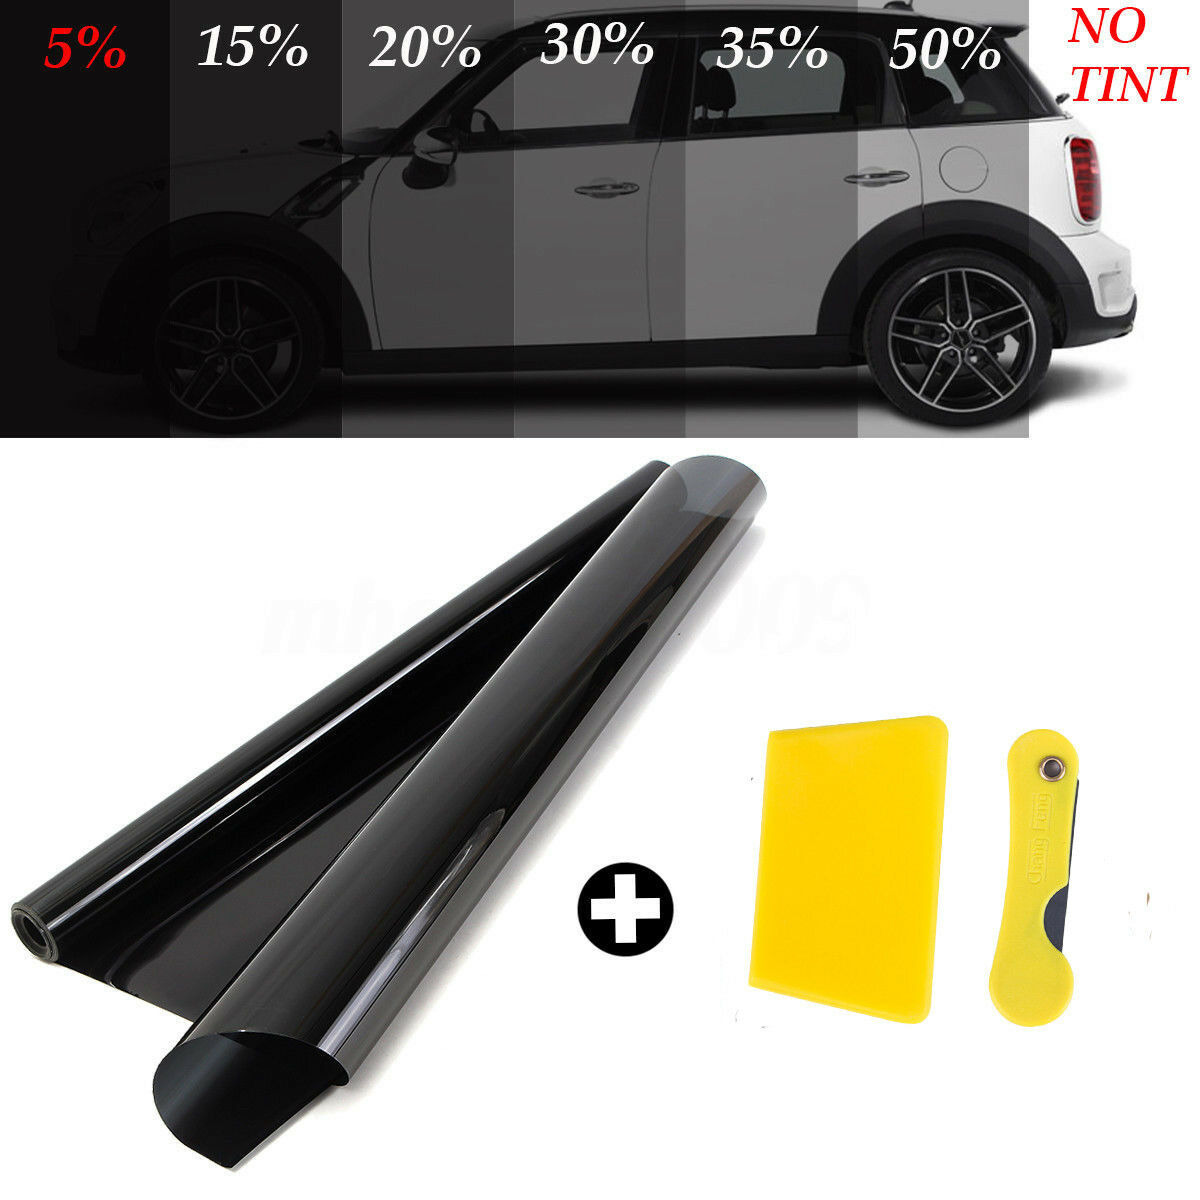 DARK SMOKE 15/% 6M x75CM 2 x ROLL 3M x 75CM CAR WINDOW TINT FILM TINTING